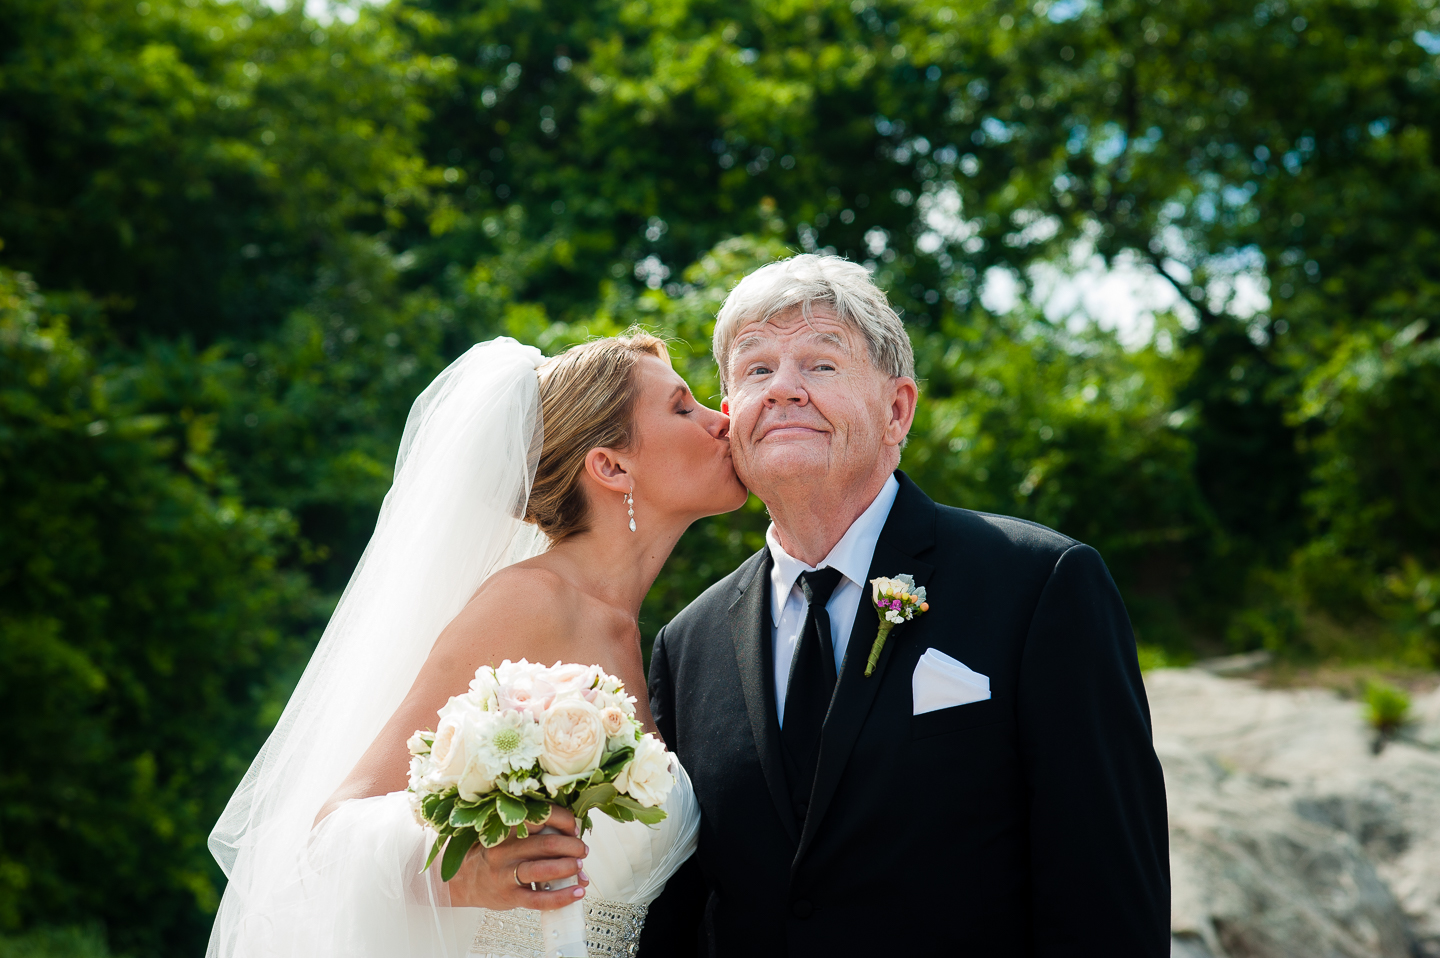 a stunning bride gives her dad a sweet kiss on the cheek during family pictures